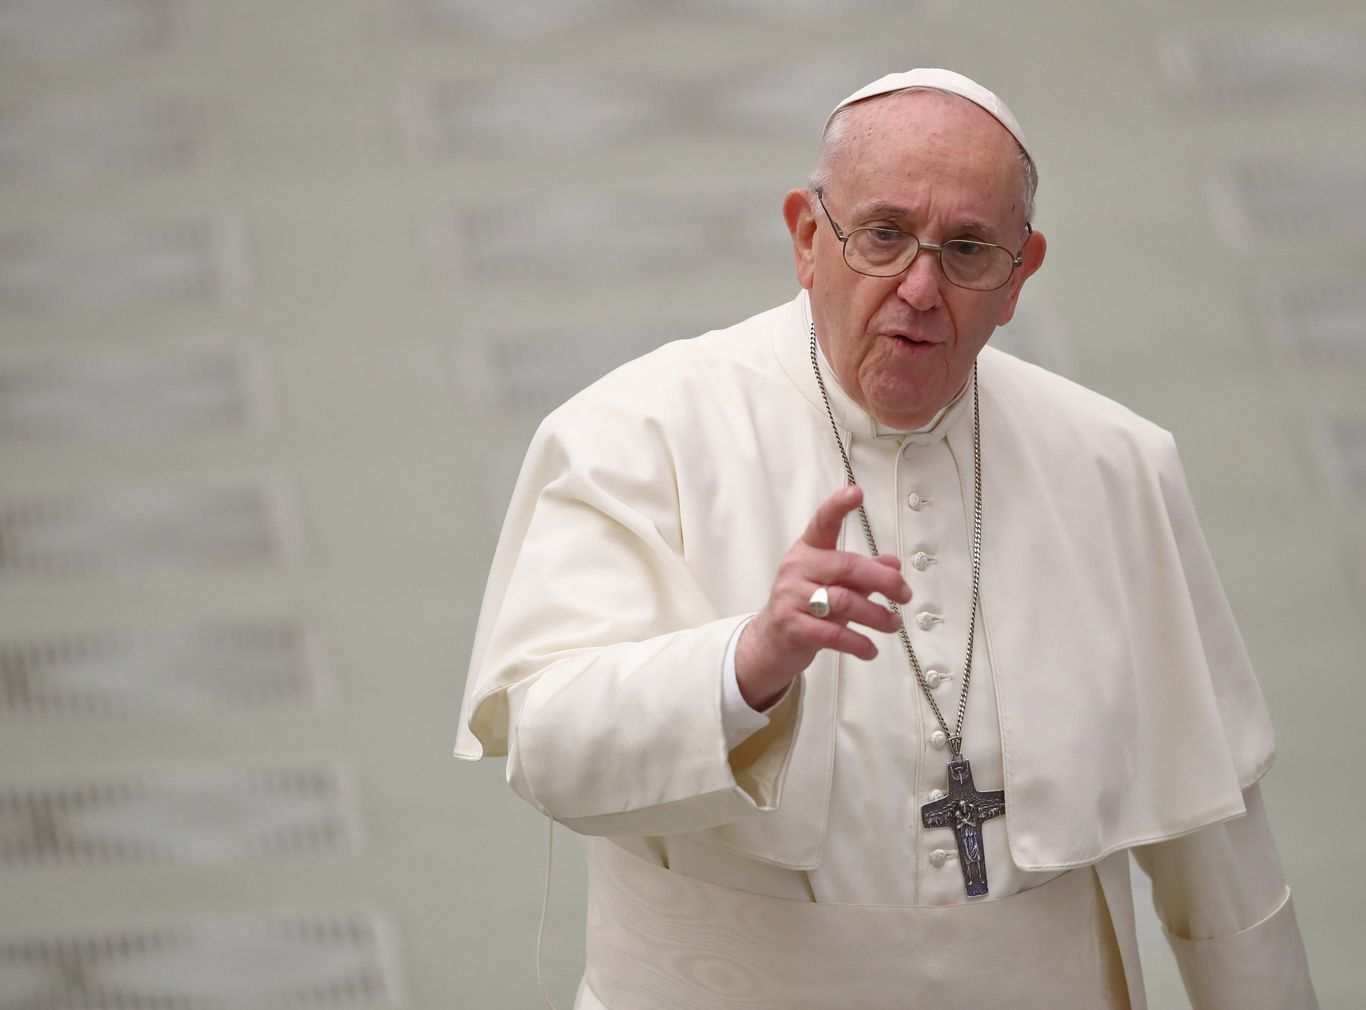 Papal election 2021 betting trends using stolen credit cards to buy bitcoins